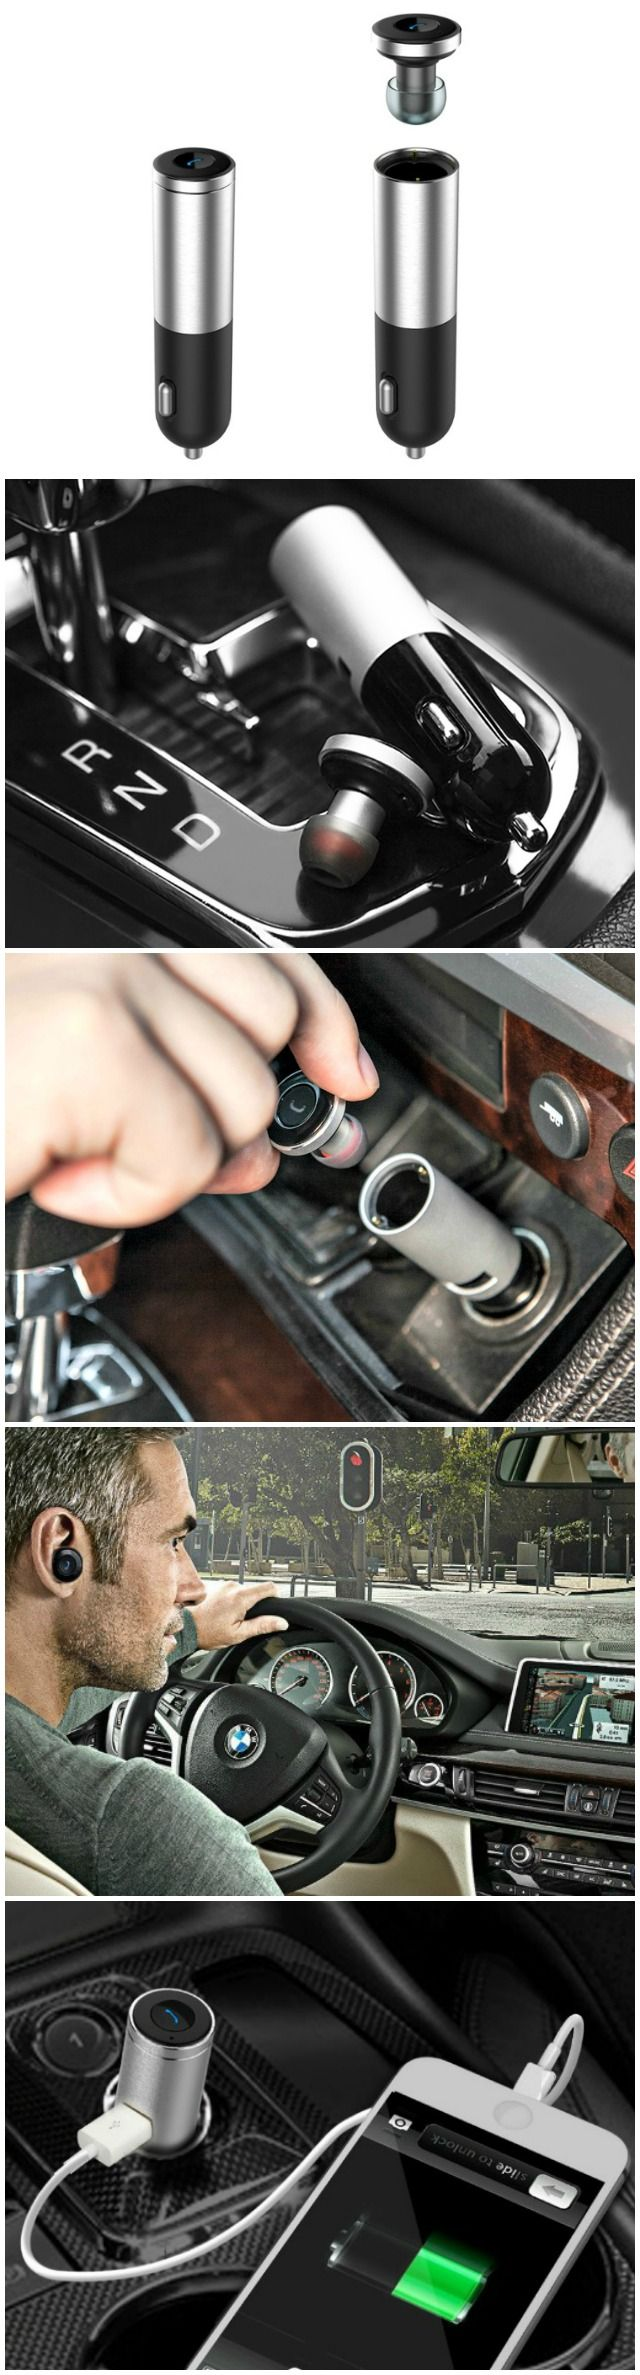 The Gosund XP01 Super Mini Bluetooth Earbud with smart car charger is the perfect car hands free kit that we have been looking for.